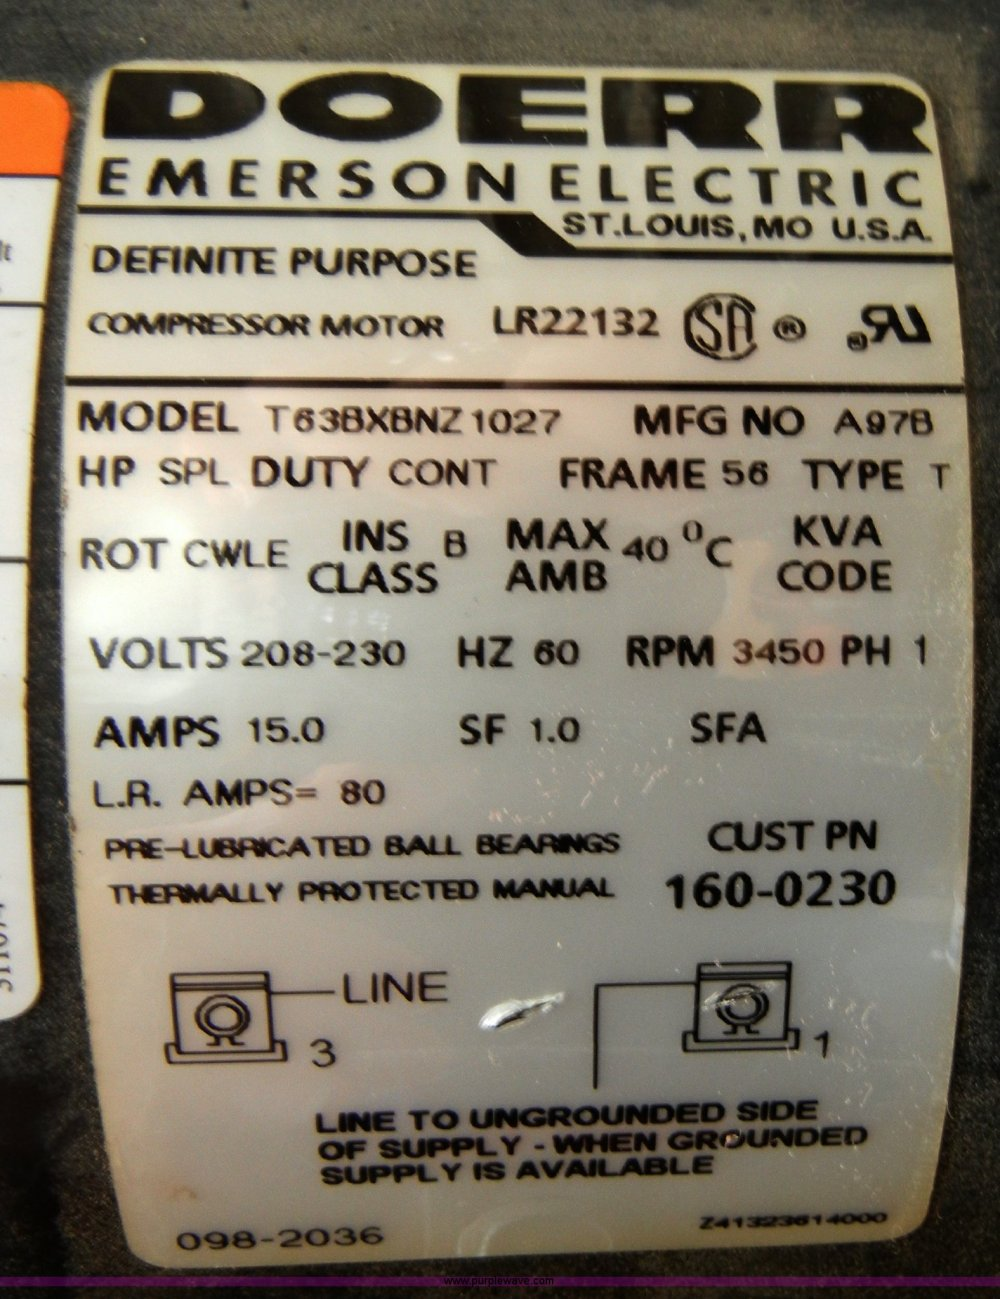 medium resolution of doerr motor lr22132 manual